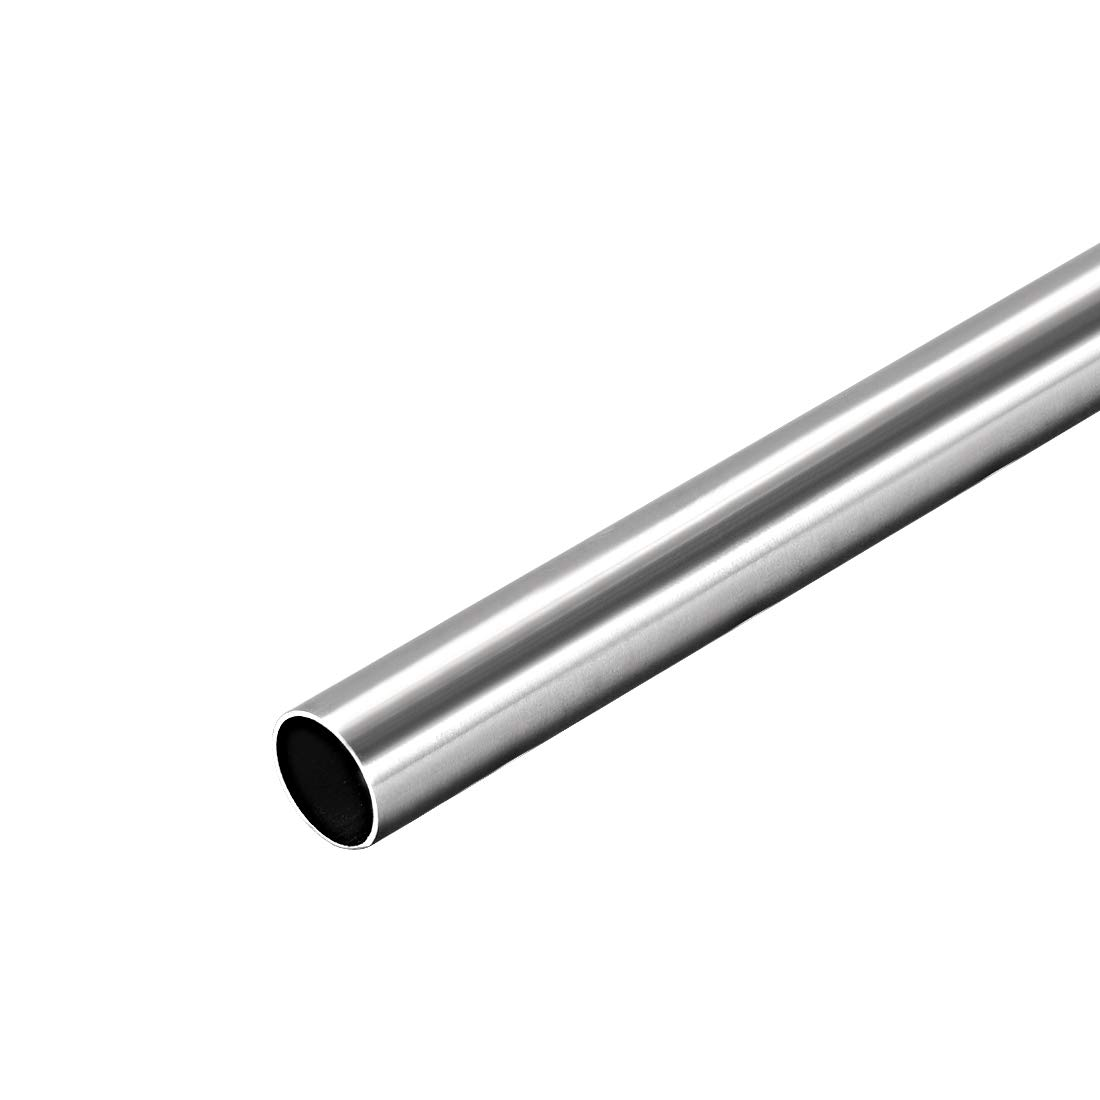 uxcell 304 Stainless Steel Round Tubing 10mm OD 0.4mm Wall Thickness 250mm Length Seamless Straight Pipe Tube